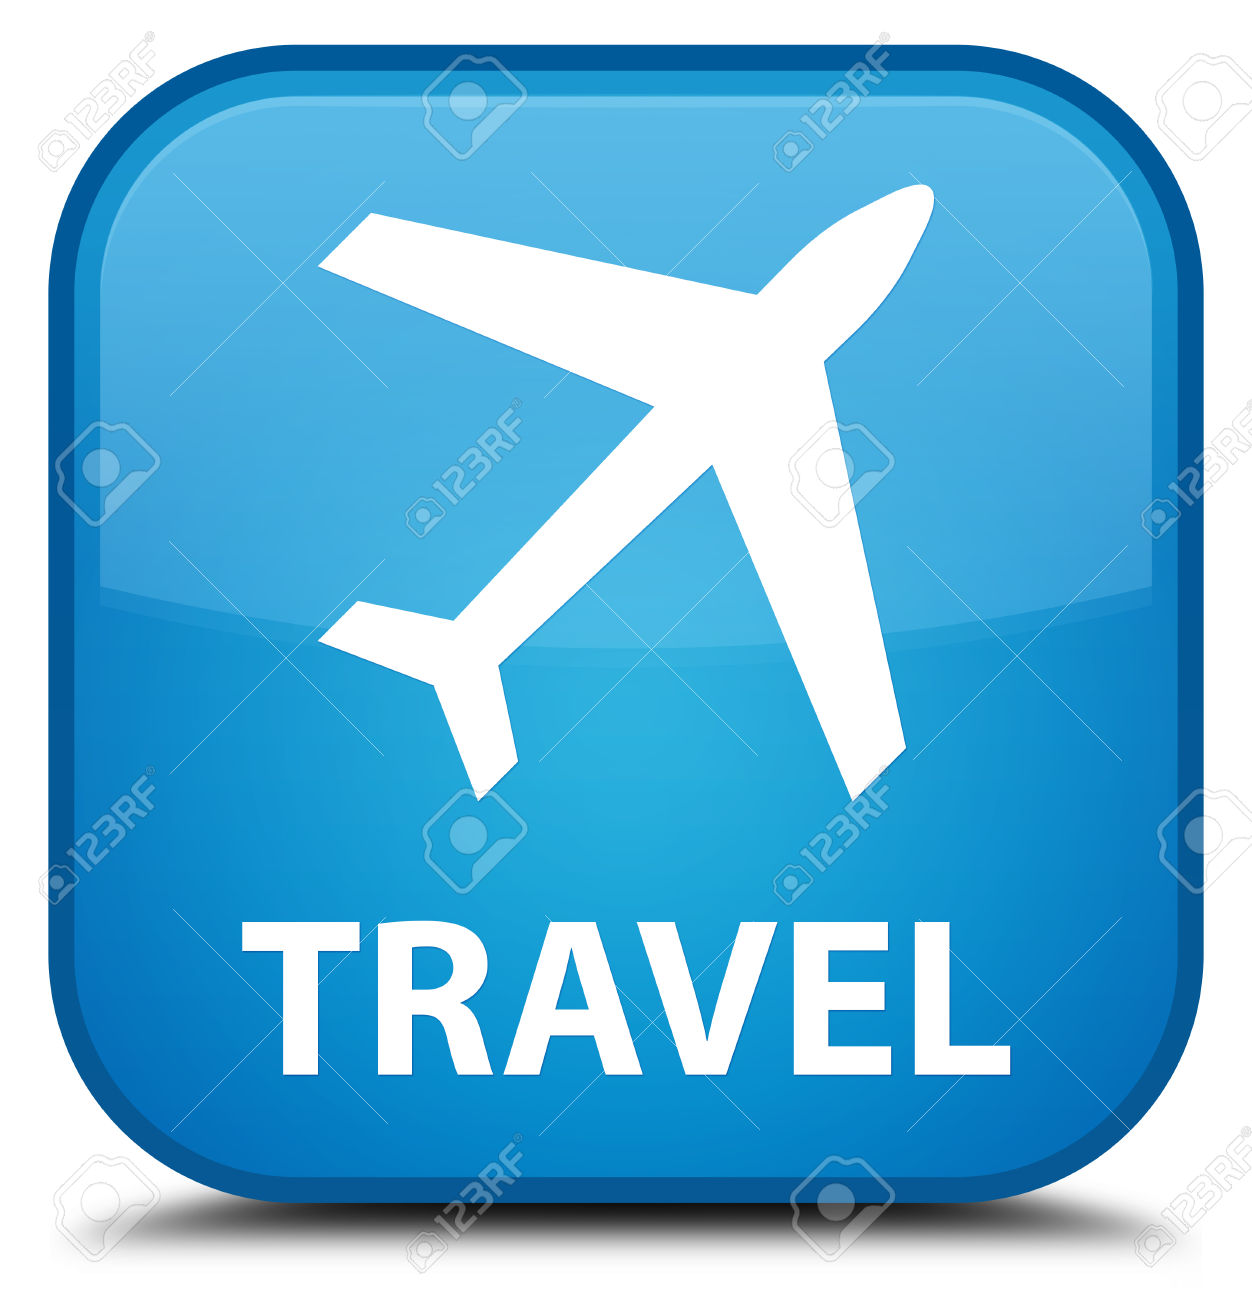 Plane clipart square jpg free download Travel (plane Icon) Cyan Blue Square Button Stock Photo, Picture ... jpg free download